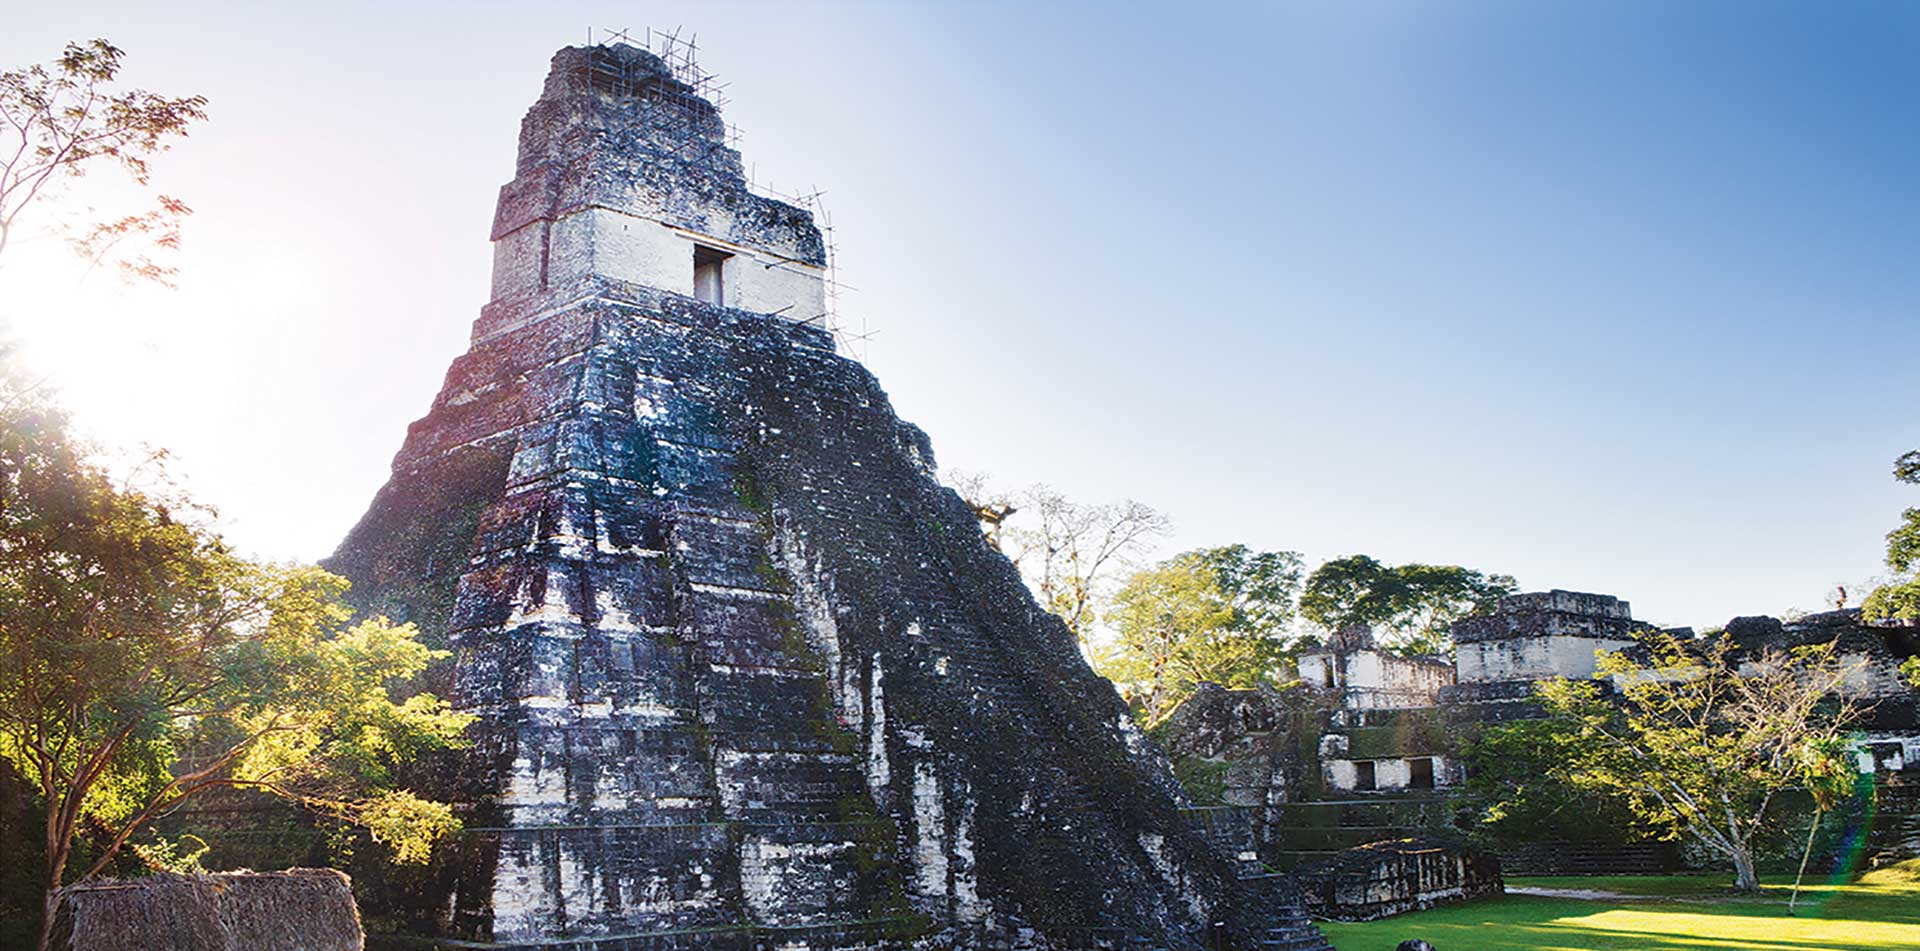 Belize North America Tikal Temple Historic Site Island Explore - luxury vacation destinations